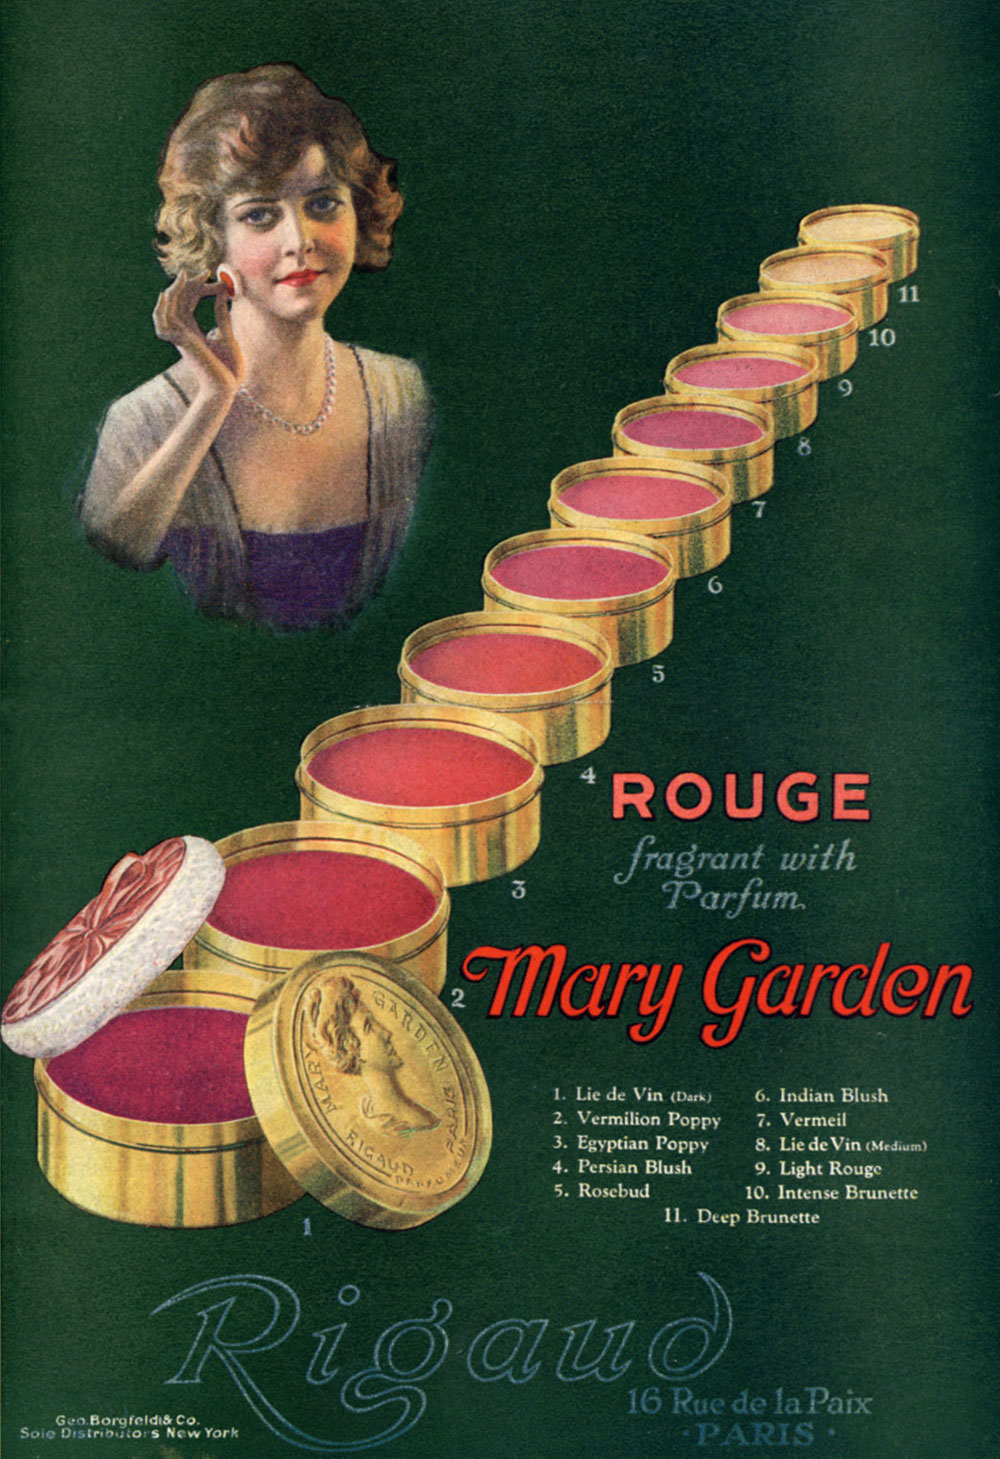 Mary Garden rouge (1920)